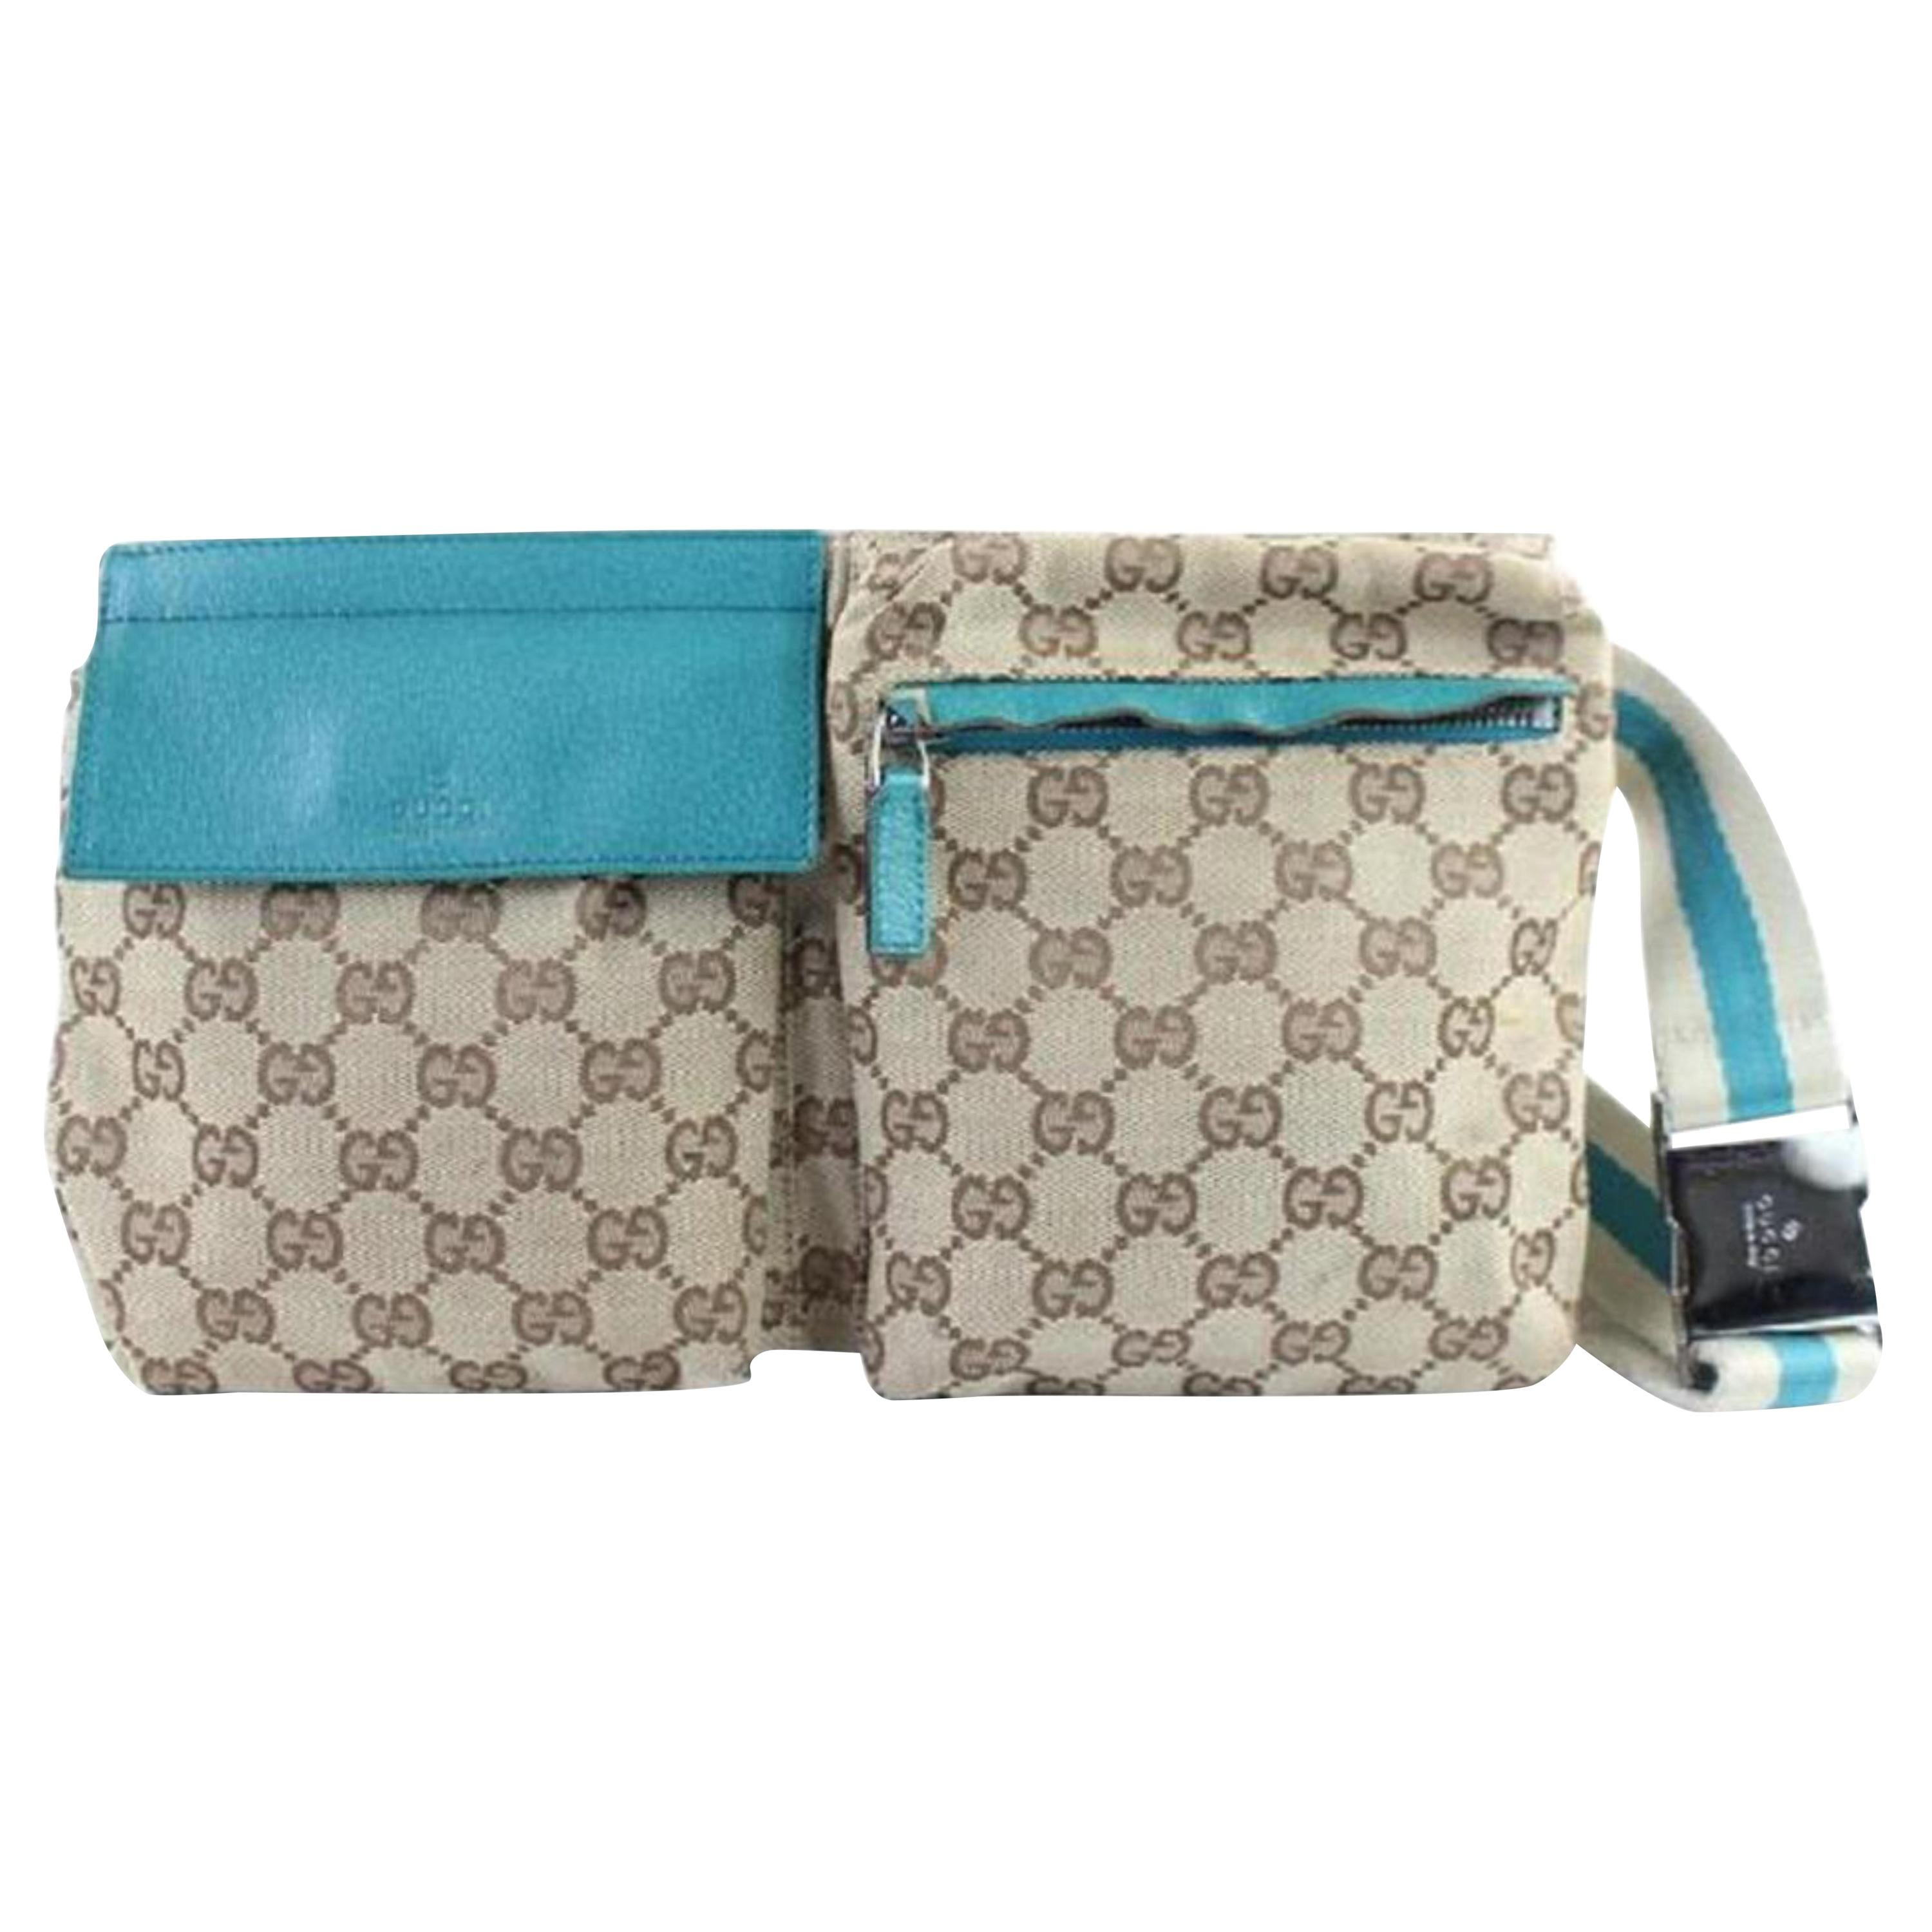 b42577d430c Gucci Blue Monogram Gg Fanny Pack Waist Pouch Belt 869510 Brown Coated  Canvas Cr For Sale at 1stdibs